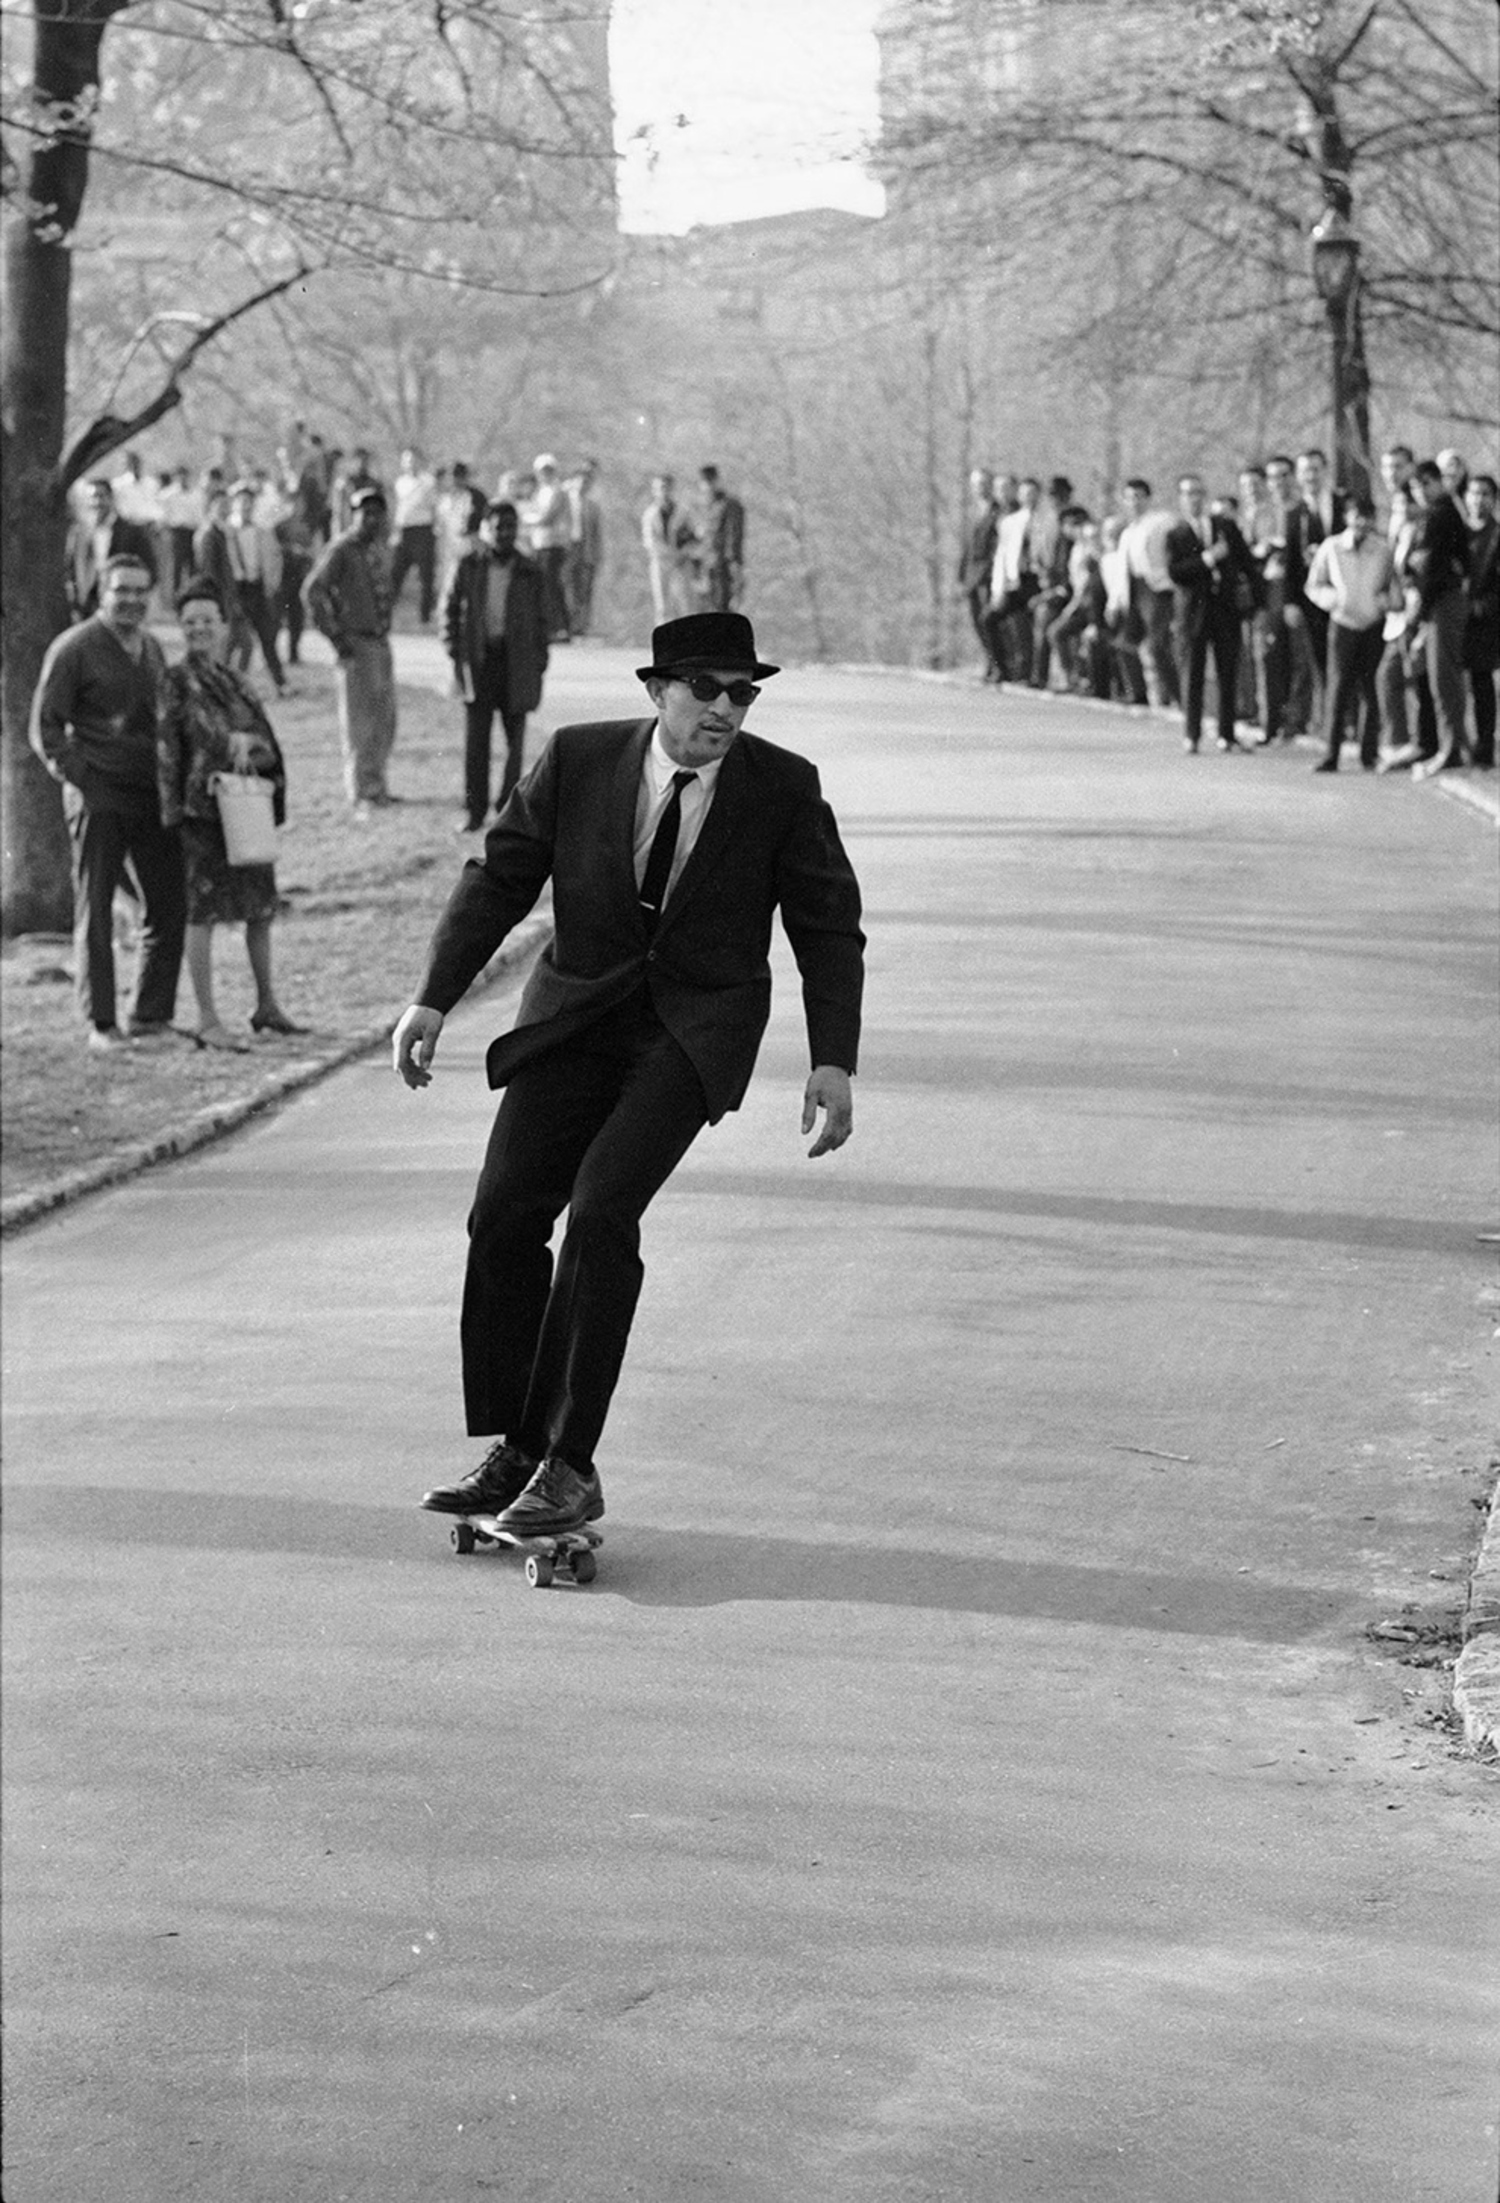 The raddest dude to ever live bombs a hill in Central Park.